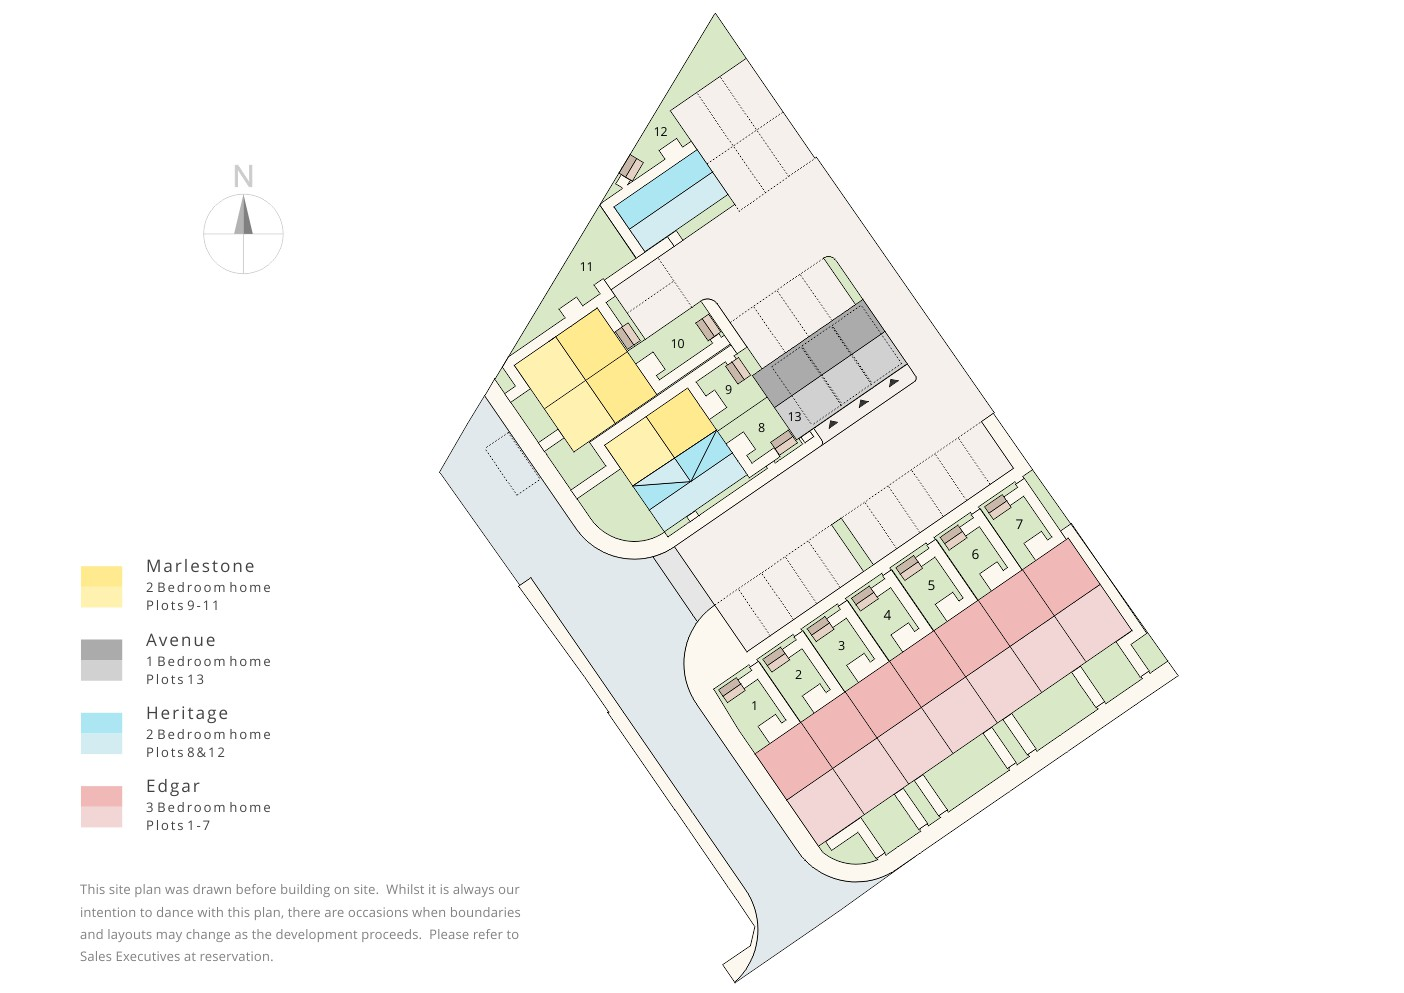 Colour site plan ben williams home design and architectural services colour elevation drawing housing development new homes planning application swindon cotswolds wiltshire ccuart Images